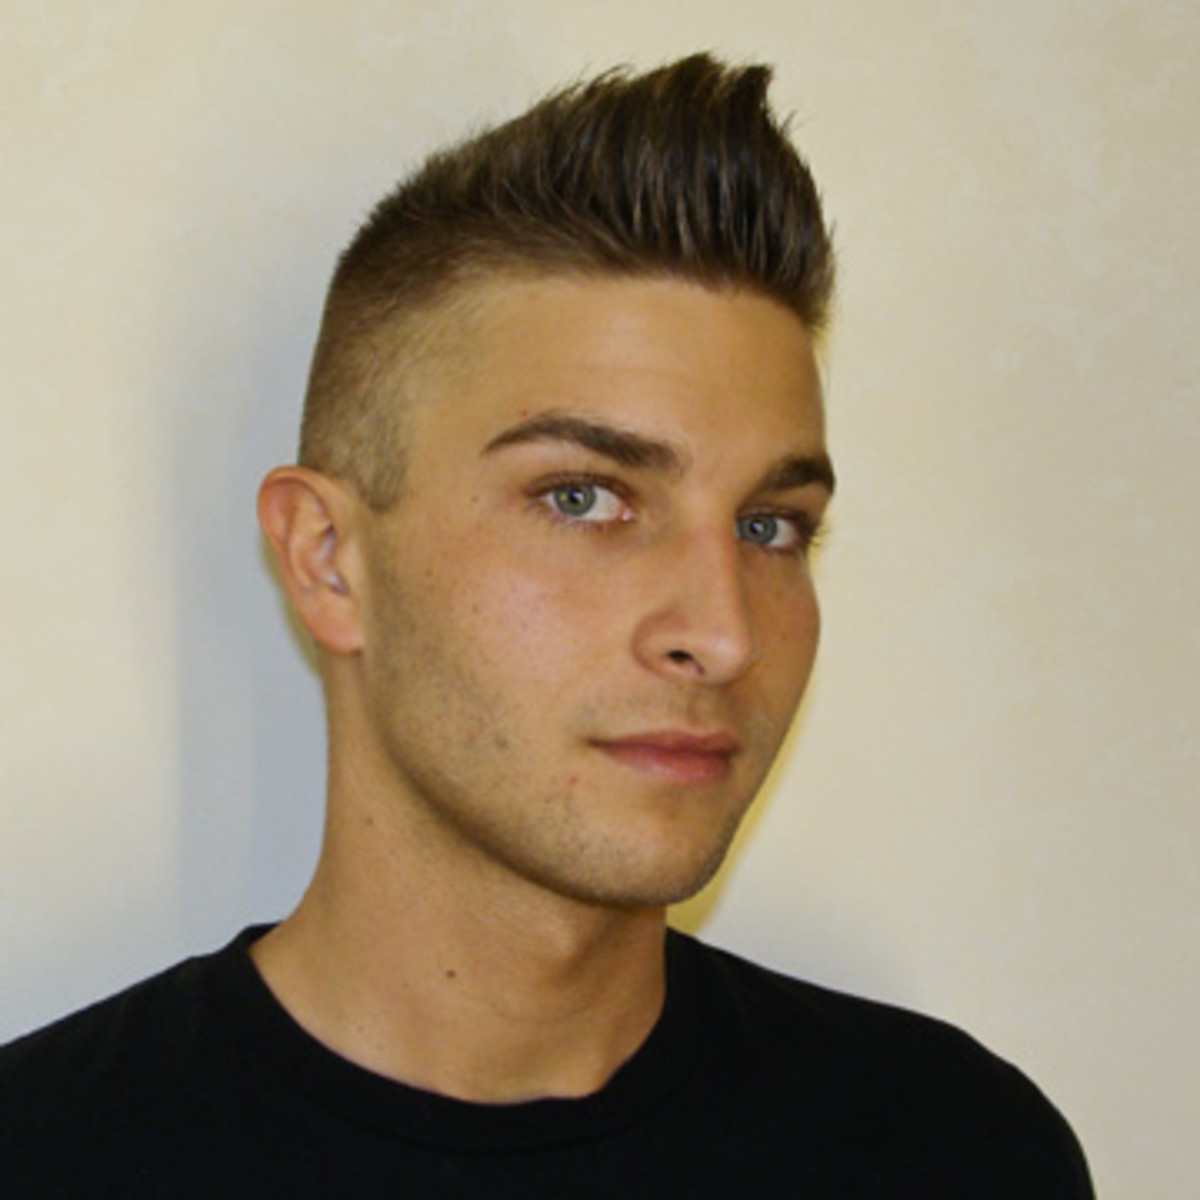 Pompadour hairstyle with shaved sides